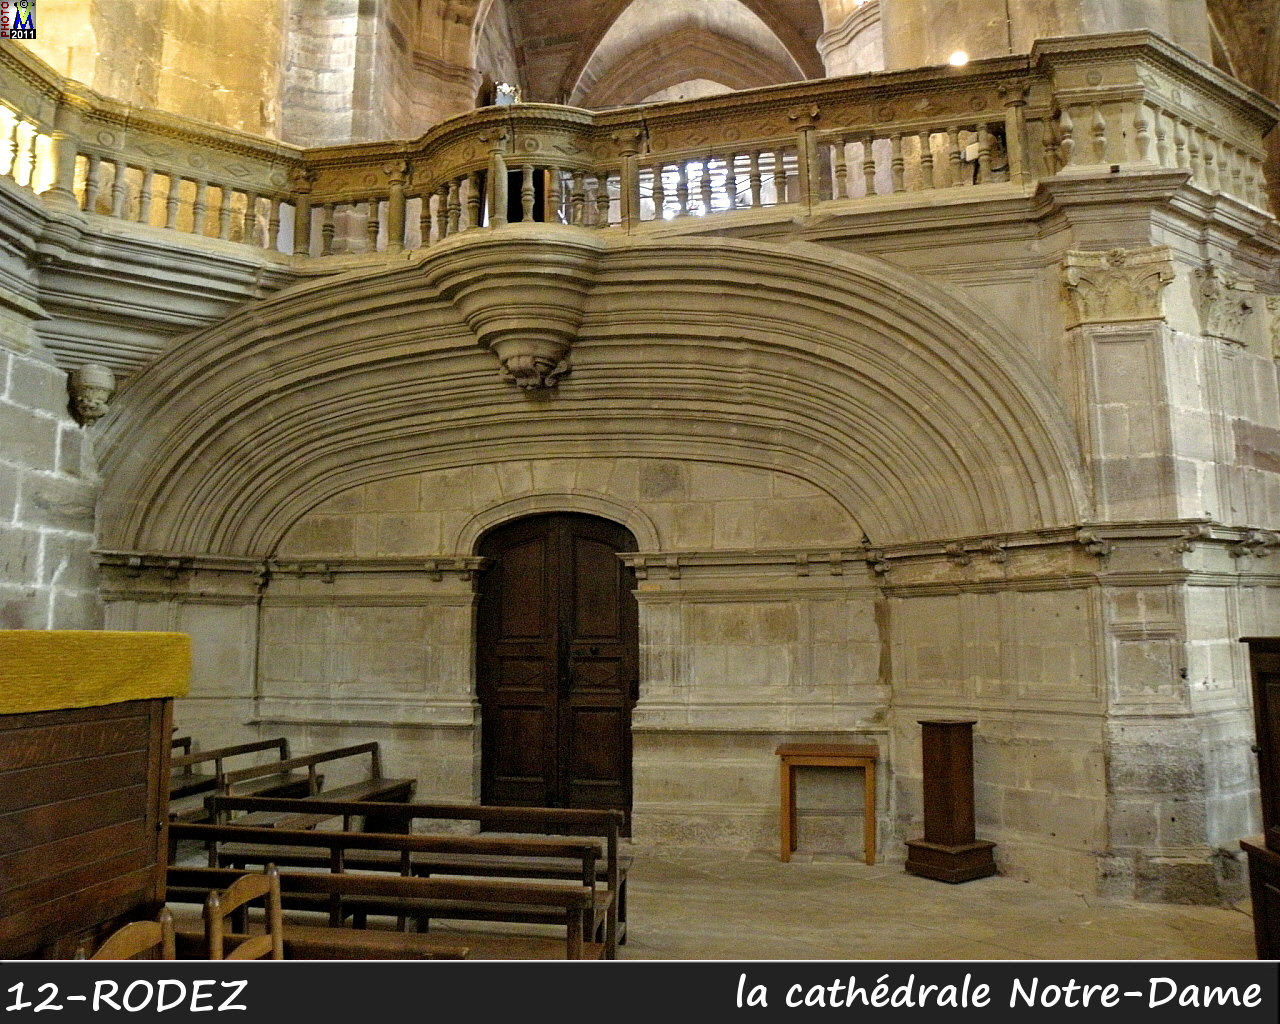 12RODEZ_cathedrale_274.jpg